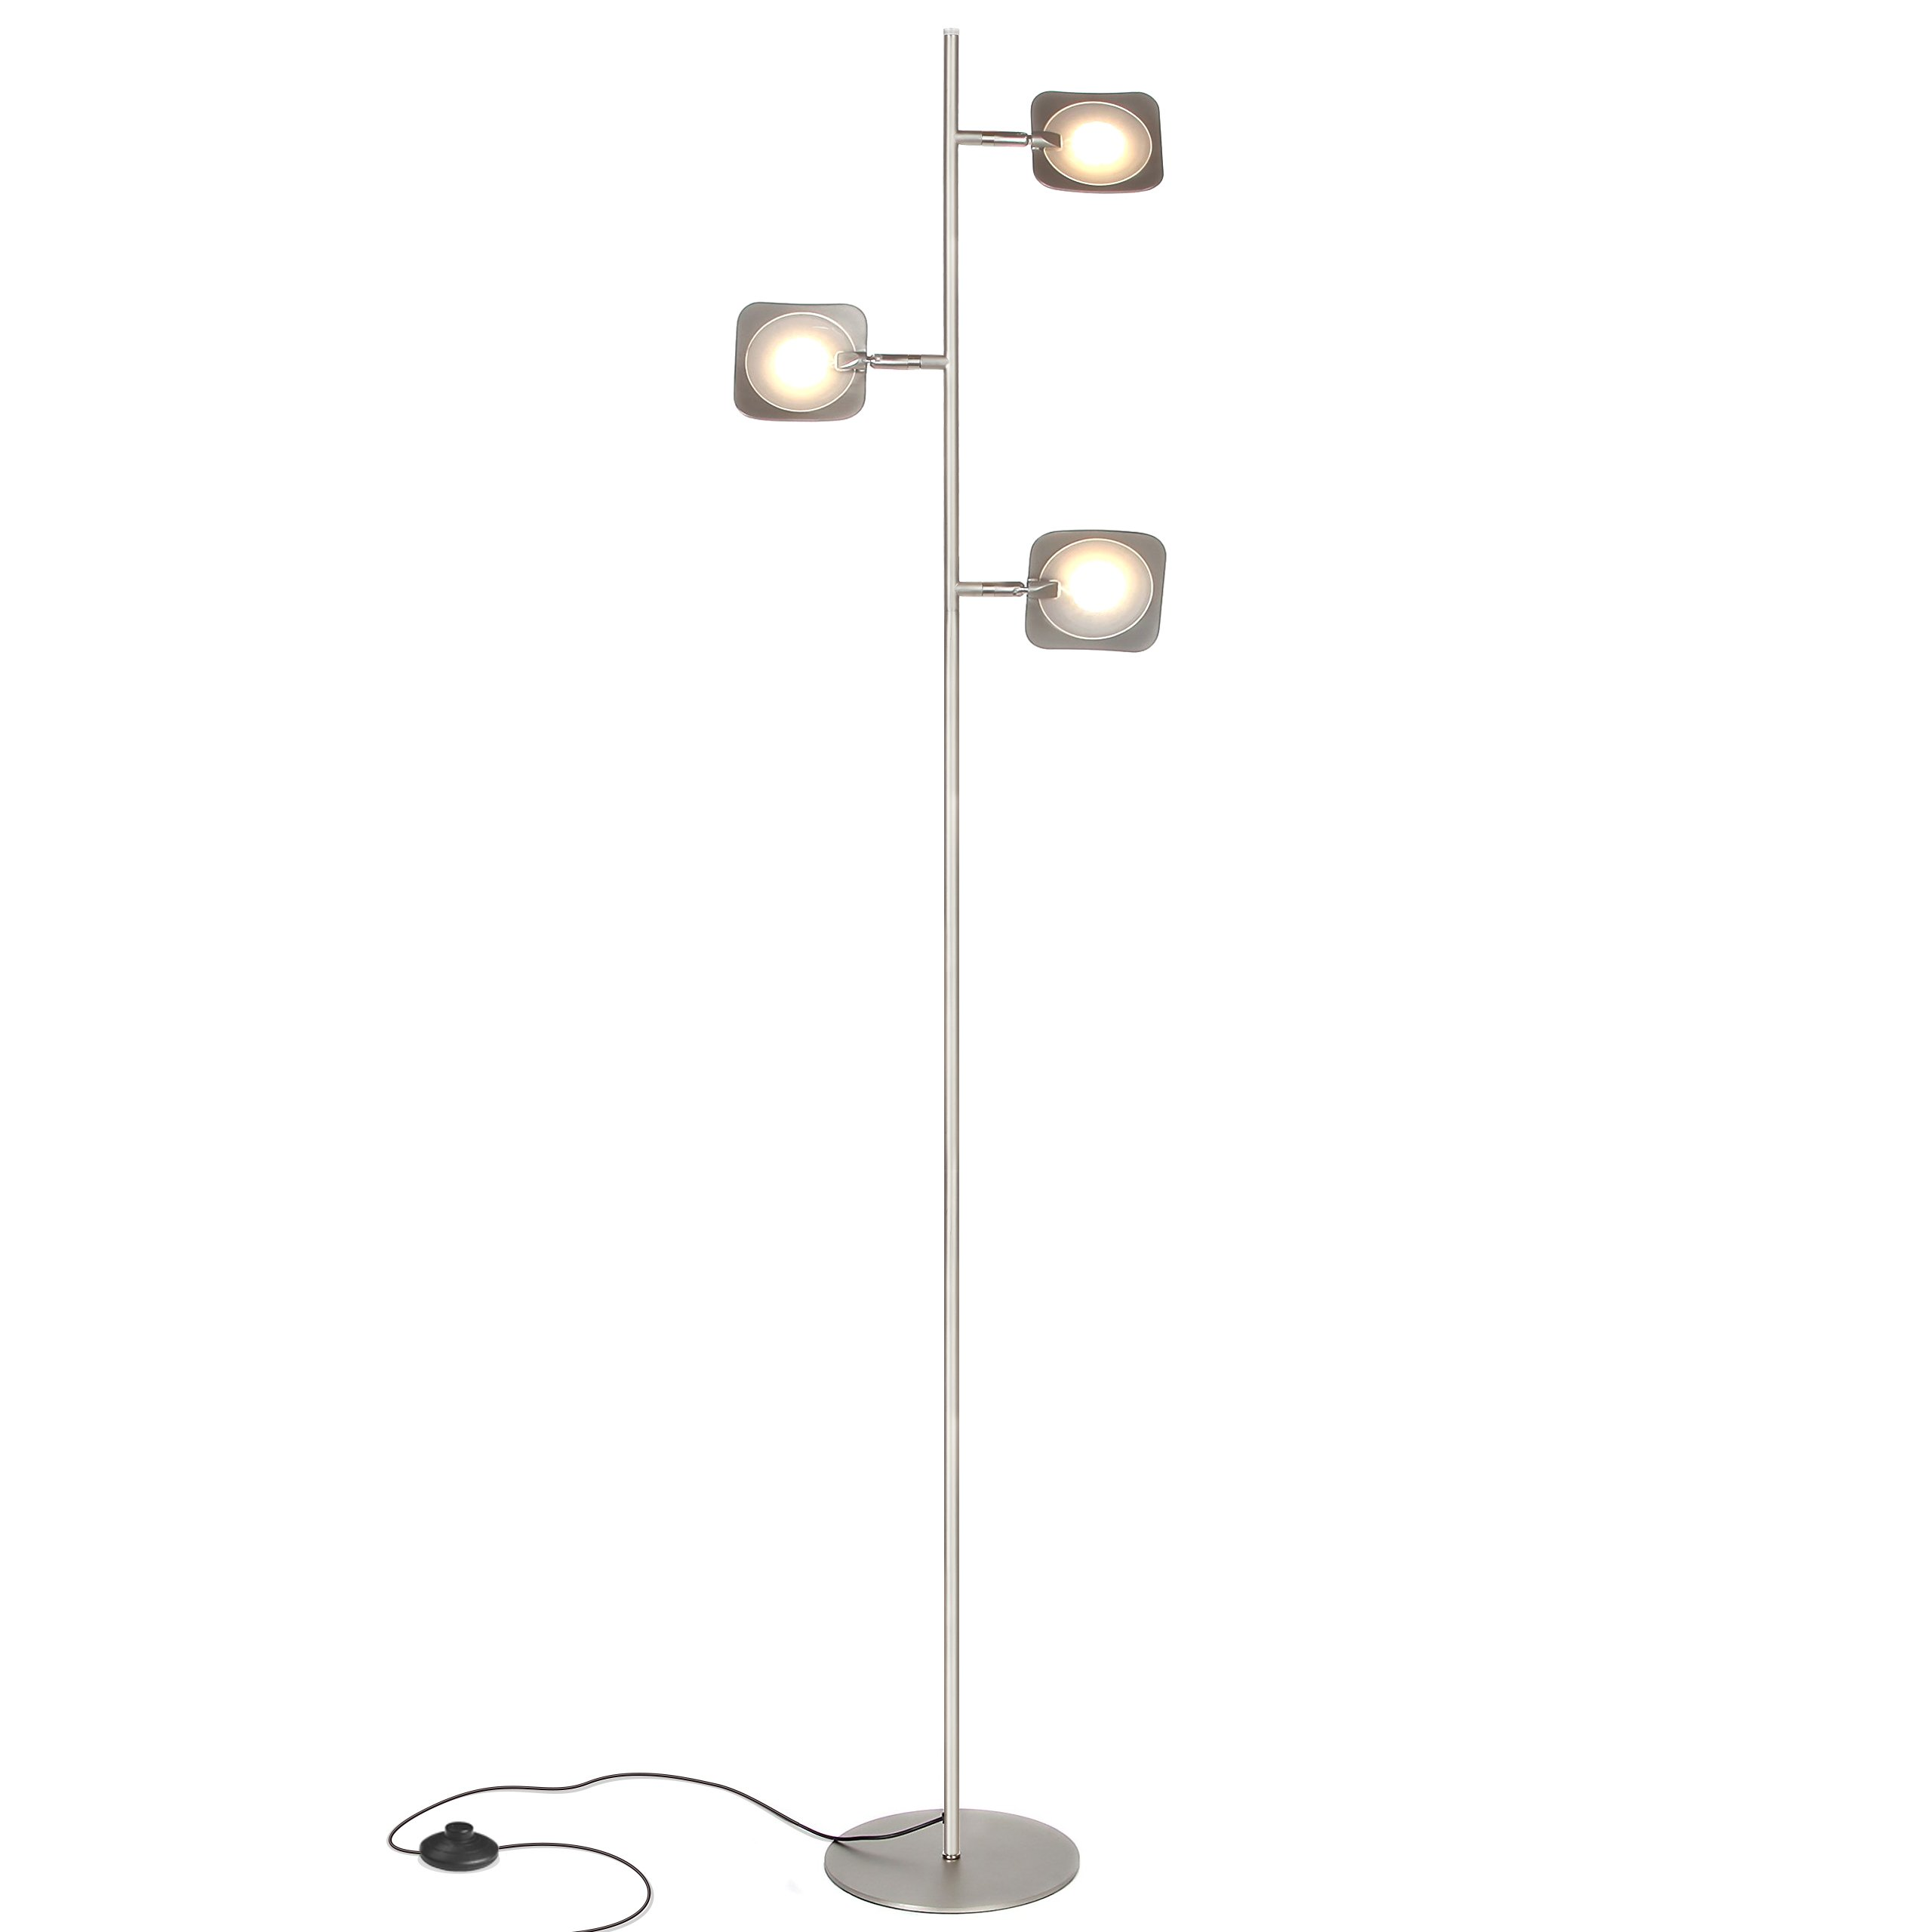 Brightech Tree Led Floor Lamp- Classy Modern Tall Pole Standing Industrial 3 Light, 3 Head – Dimmable & Adjustable Omnidirectional Energy Saving Light for Living Room Office Dorm Bedroom- Satin Nickel